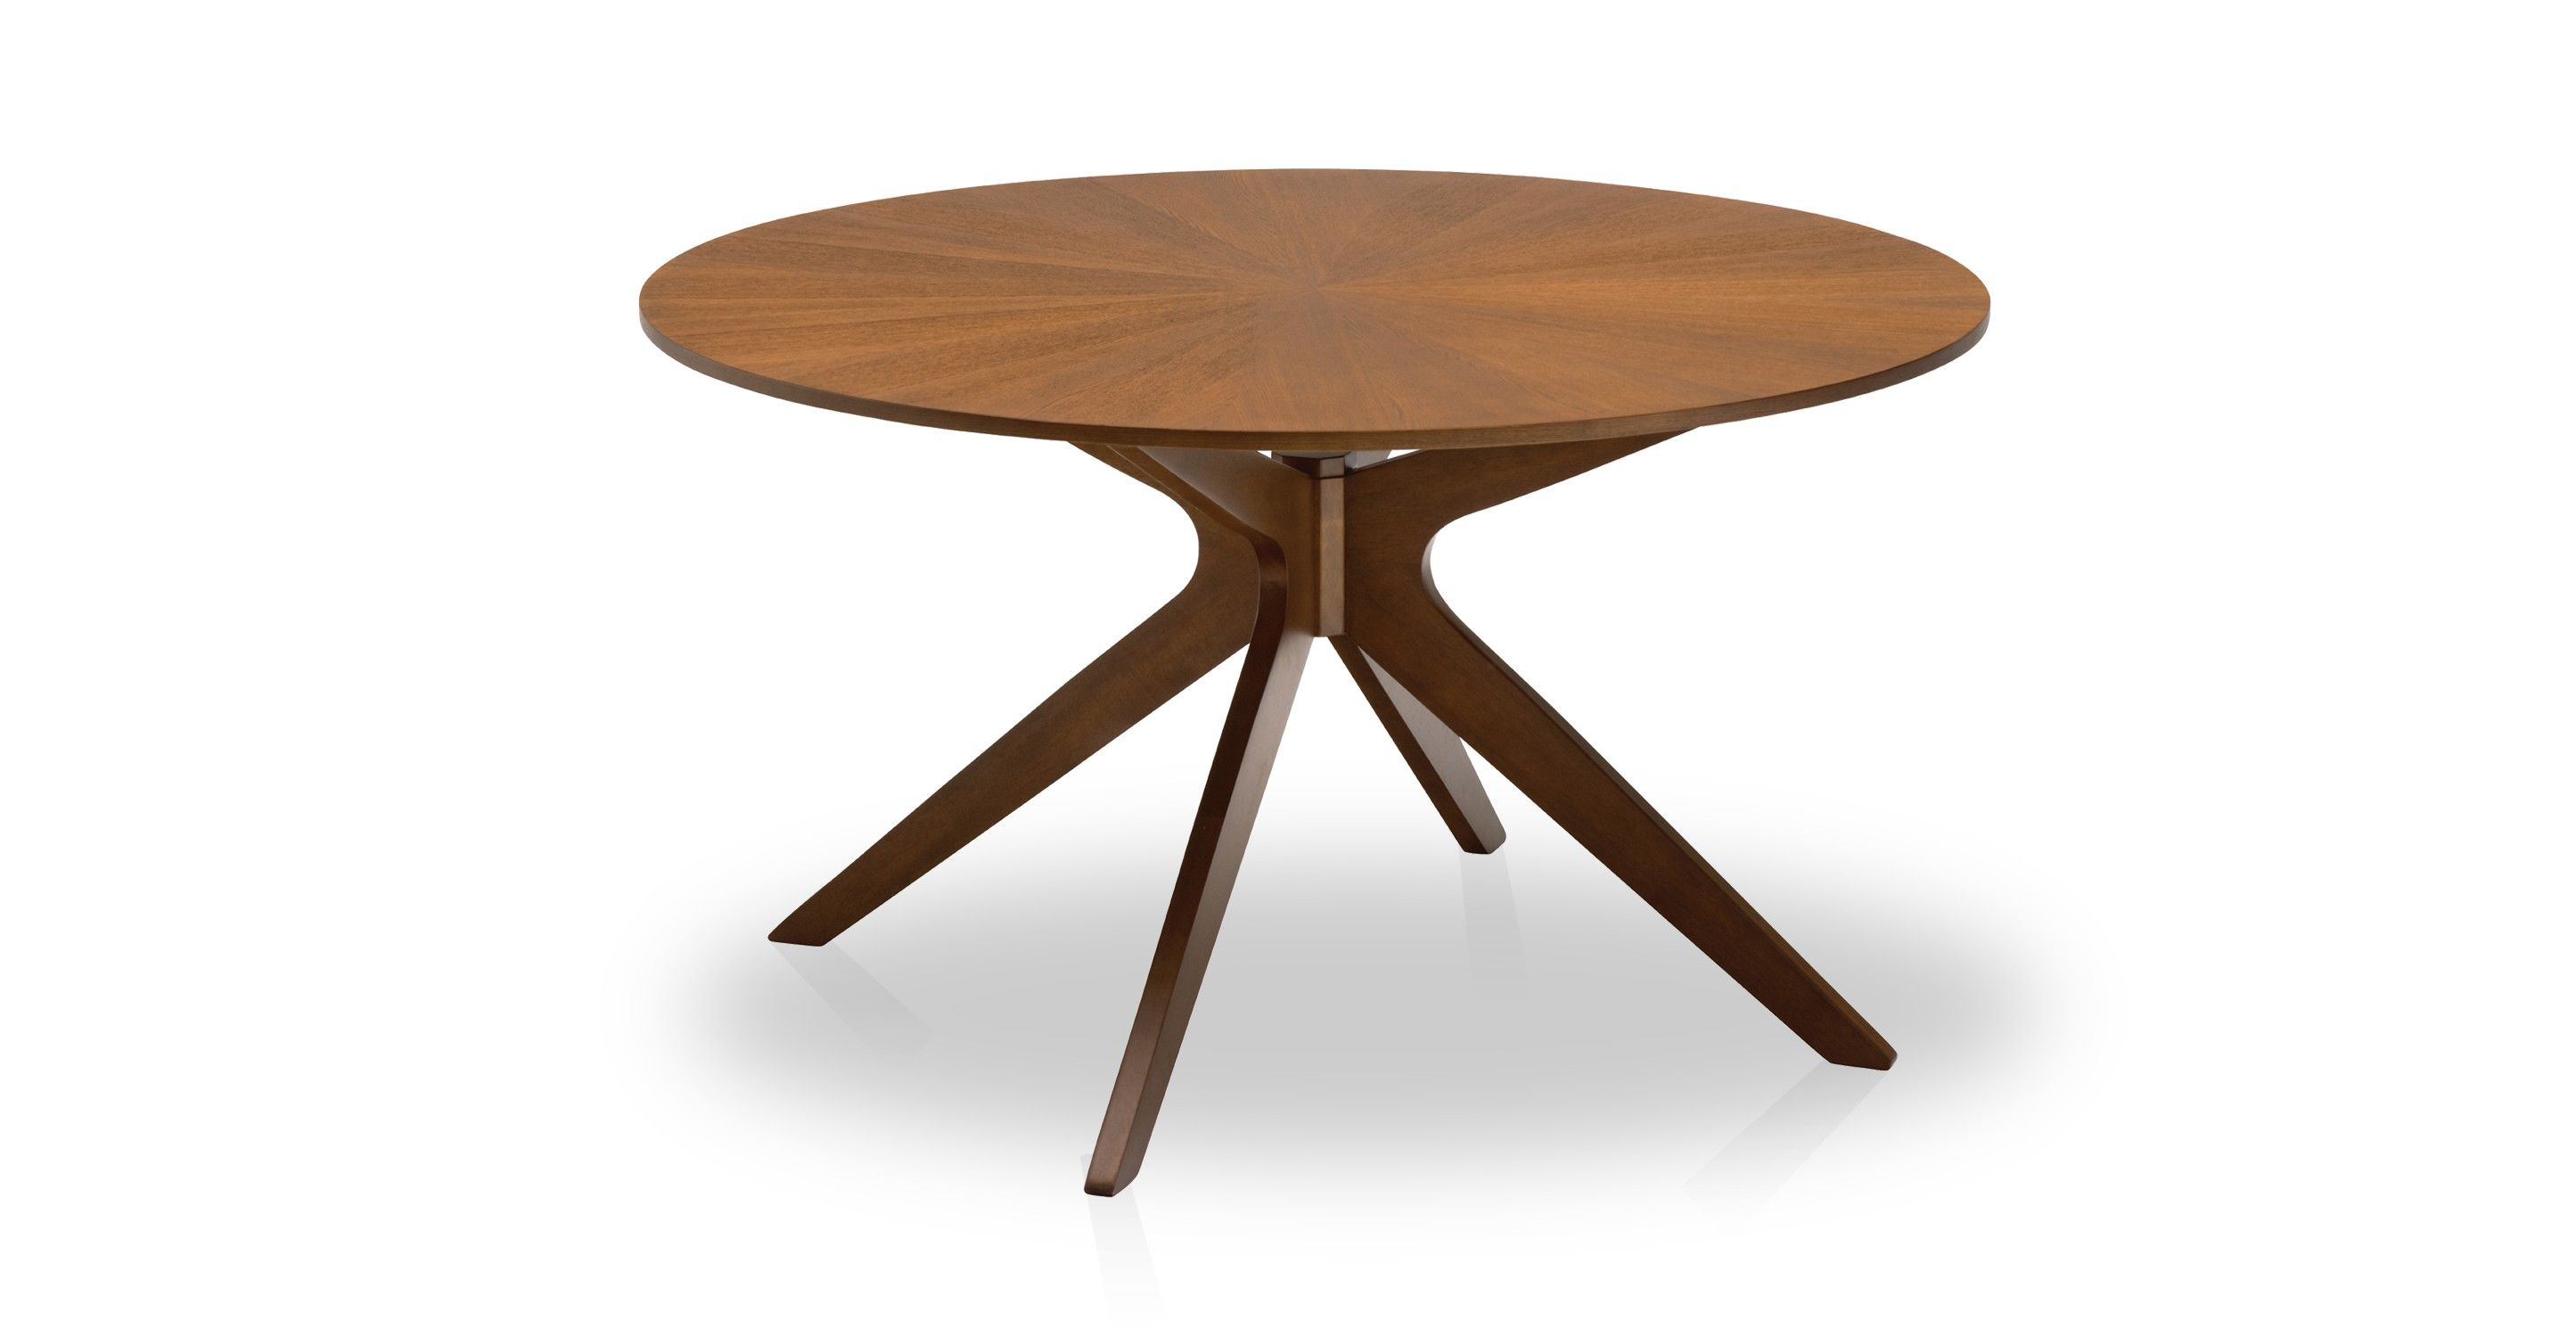 Round Mid Century Modern Dining Table In Brown Wood